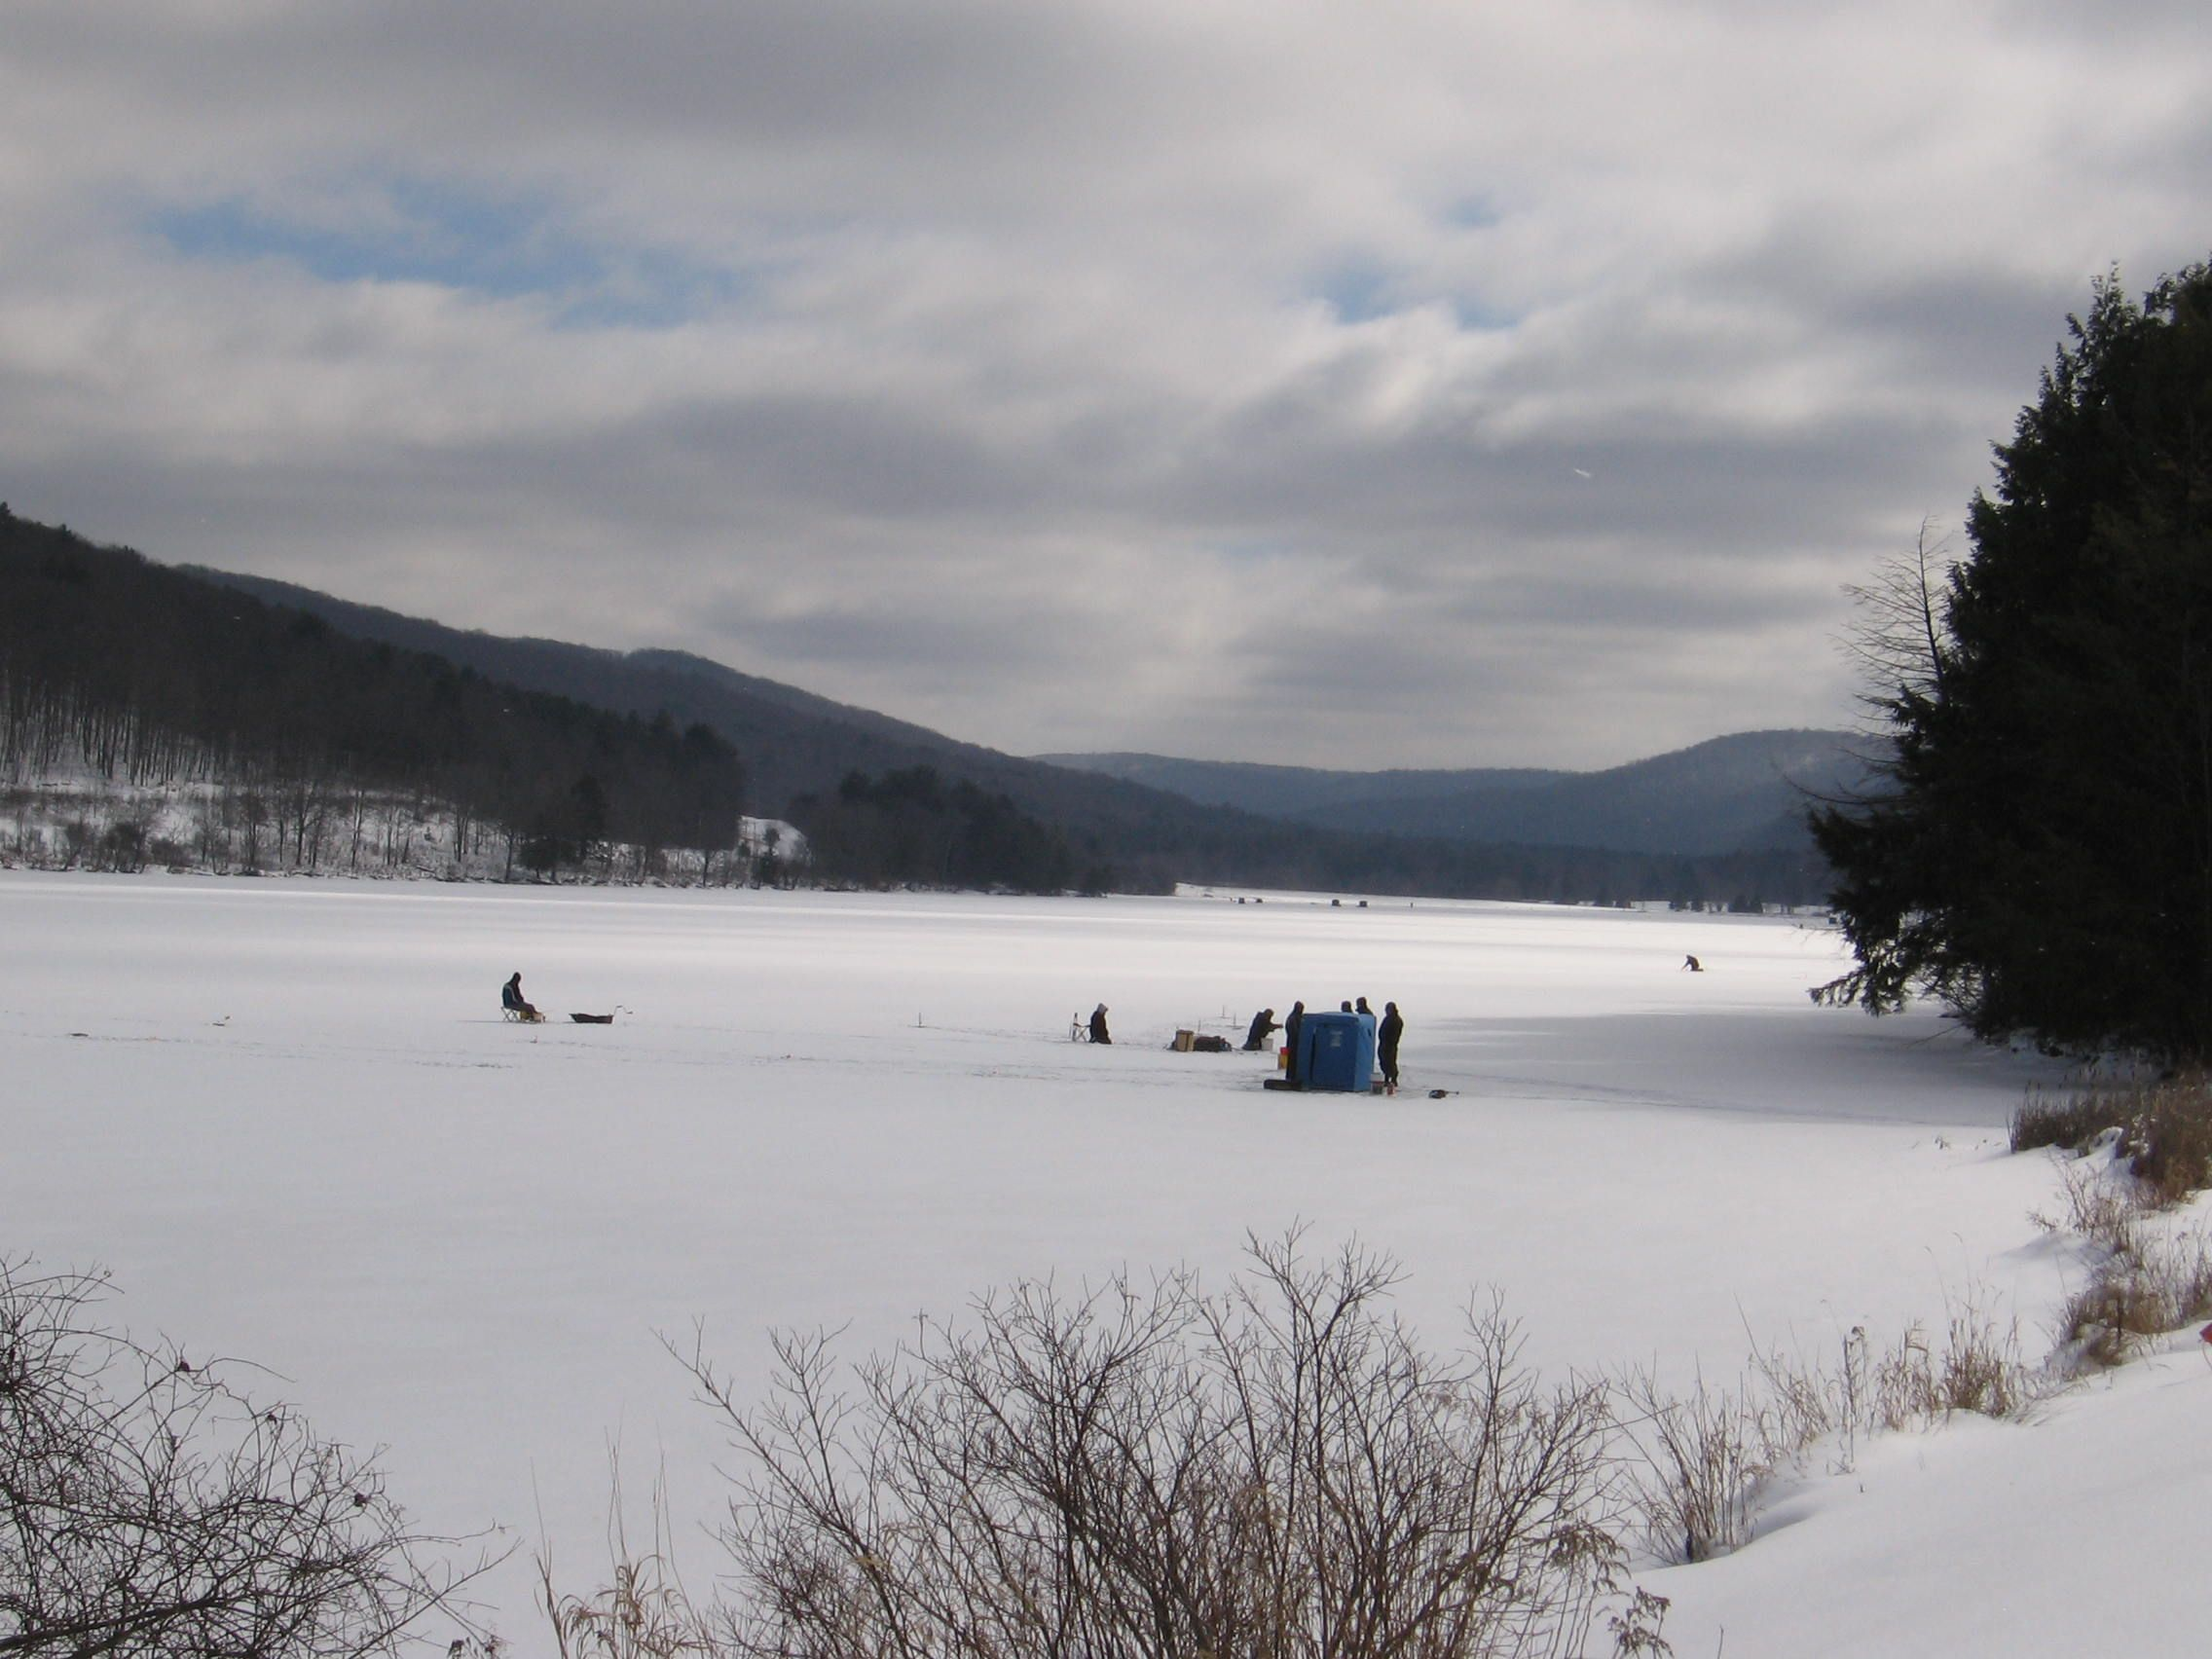 Ice Fishing Can Be Exciting And Fun Cattaraugus County Has Allegany State Park That Attracts Numerous Winter Time Allegany State Park State Parks Small Lake